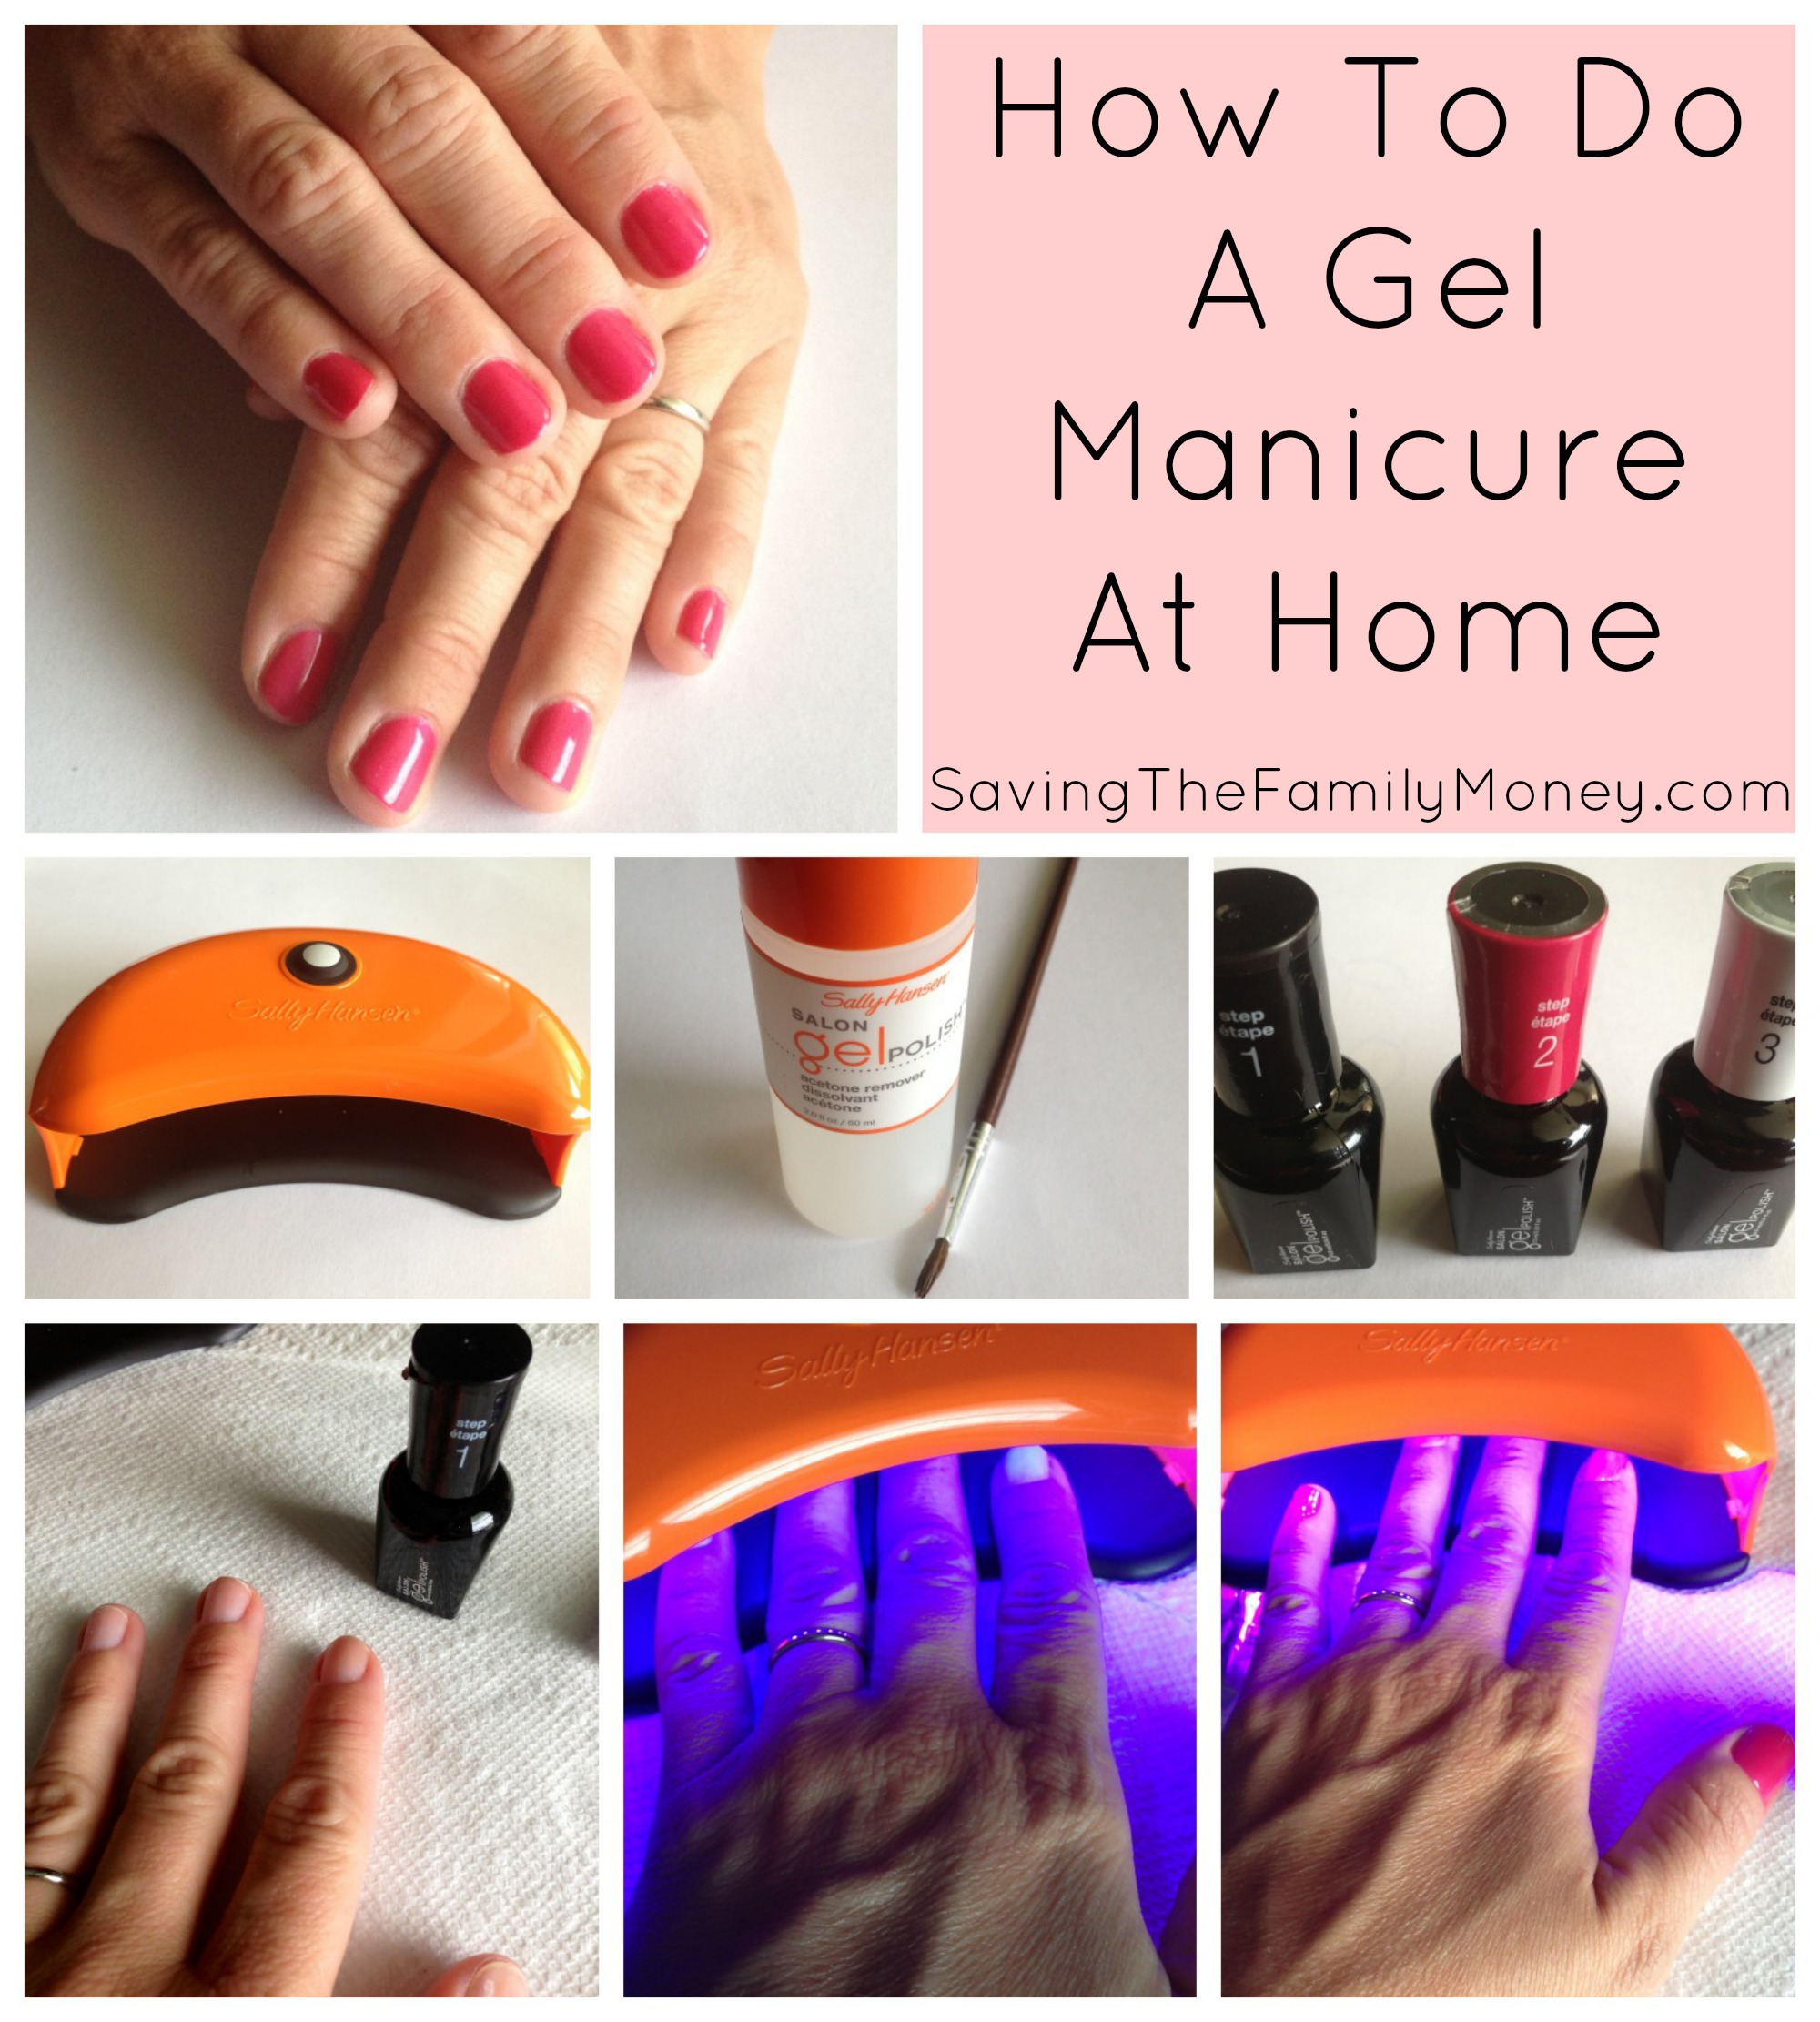 Saving Money On Beauty | At Home Gel Manicures – Saving The Family Money